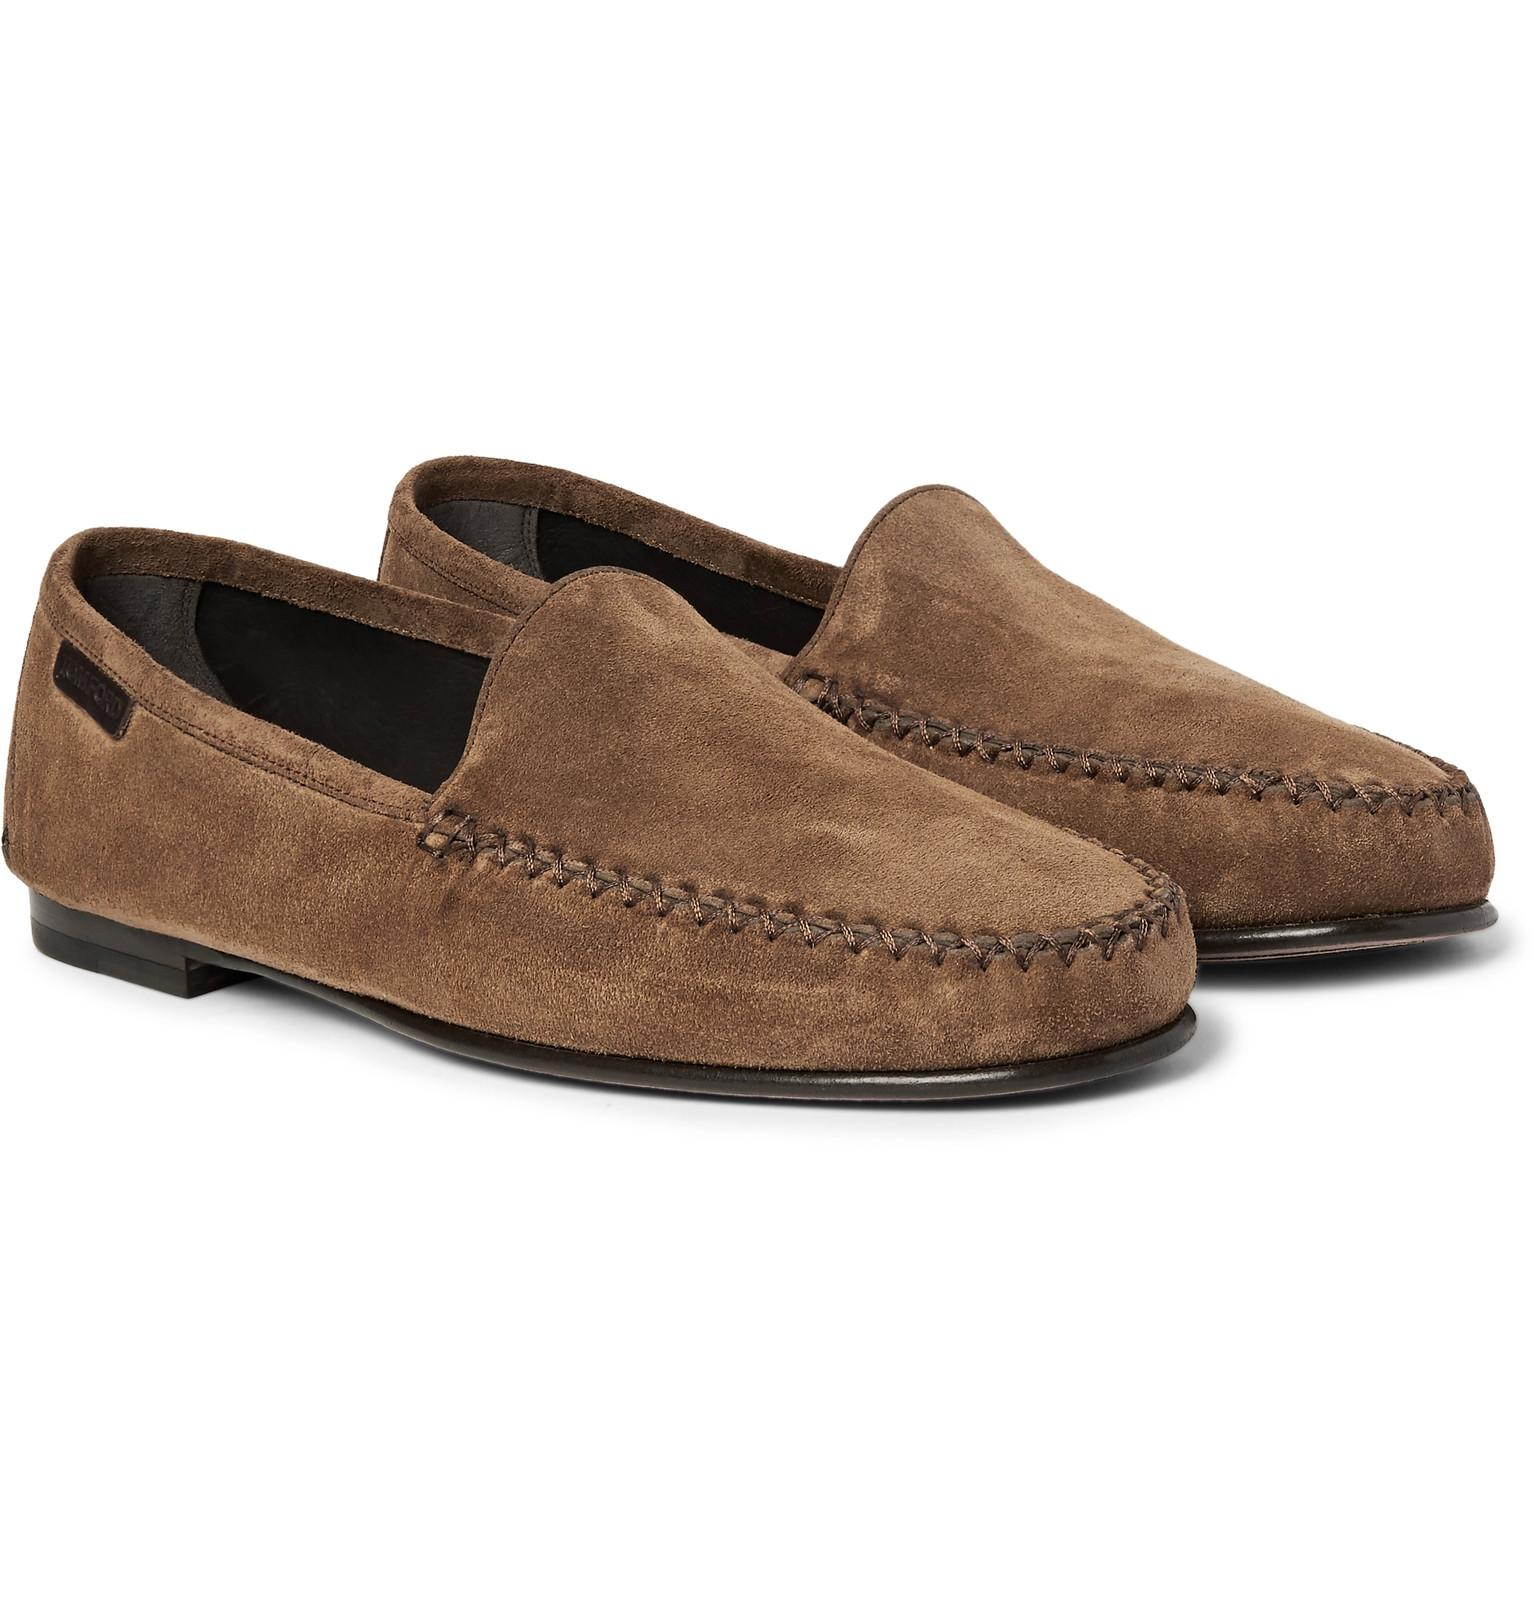 tom ford howard suede loafers in brown for lyst